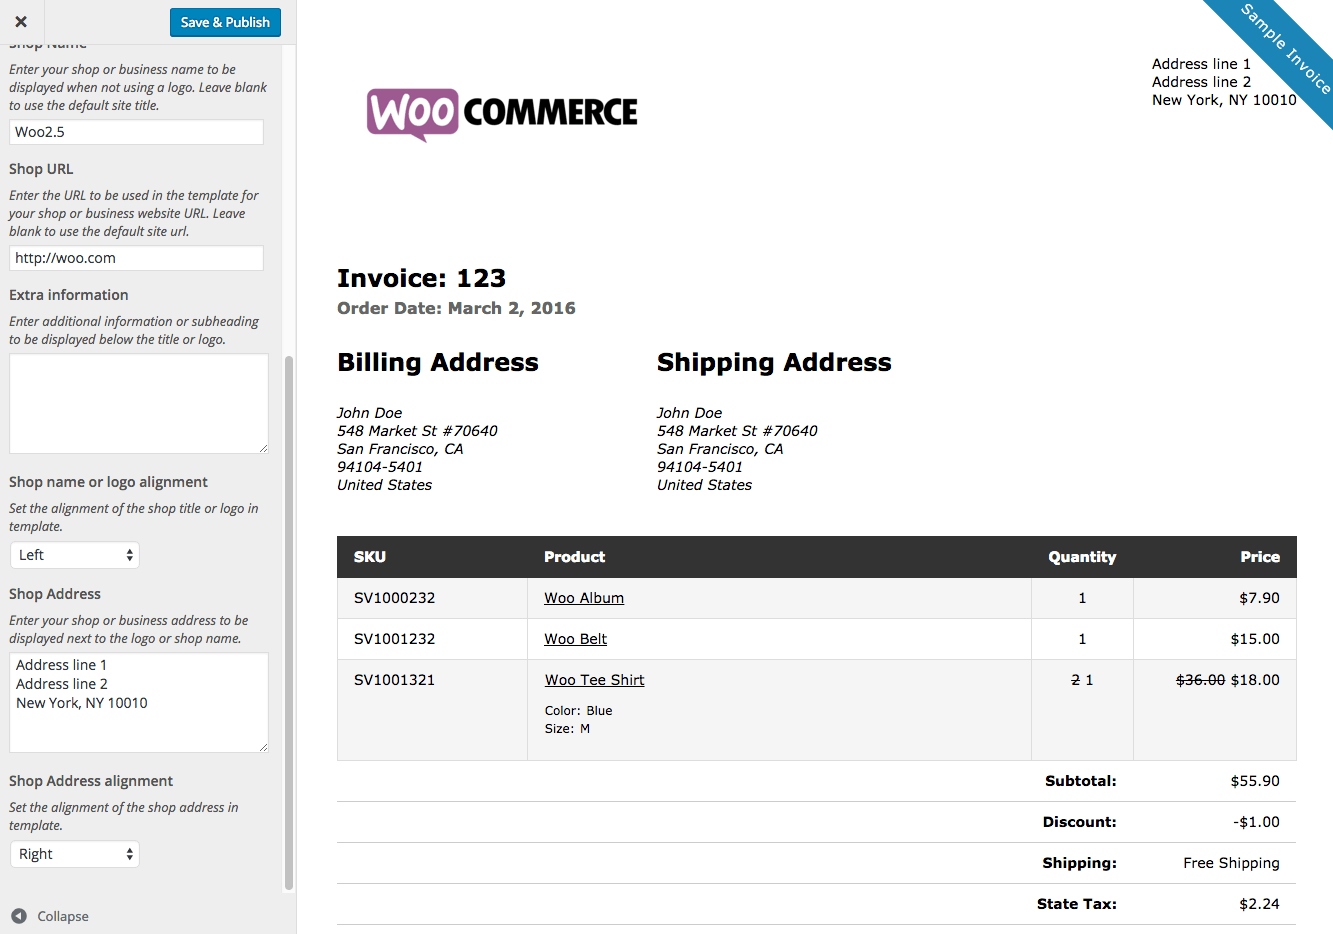 Totallocalus  Gorgeous Woocommerce Print Invoices Amp Packing Lists  Woocommerce Docs With Interesting Woocommerce Print Invoices  Packing Lists Customizer With Delightful Art Invoice Also Jeep Grand Cherokee Invoice Price In Addition Invoice No And Blank Billing Invoice As Well As Invoice Paid In Full Additionally Business Invoices Free From Docswoocommercecom With Totallocalus  Interesting Woocommerce Print Invoices Amp Packing Lists  Woocommerce Docs With Delightful Woocommerce Print Invoices  Packing Lists Customizer And Gorgeous Art Invoice Also Jeep Grand Cherokee Invoice Price In Addition Invoice No From Docswoocommercecom